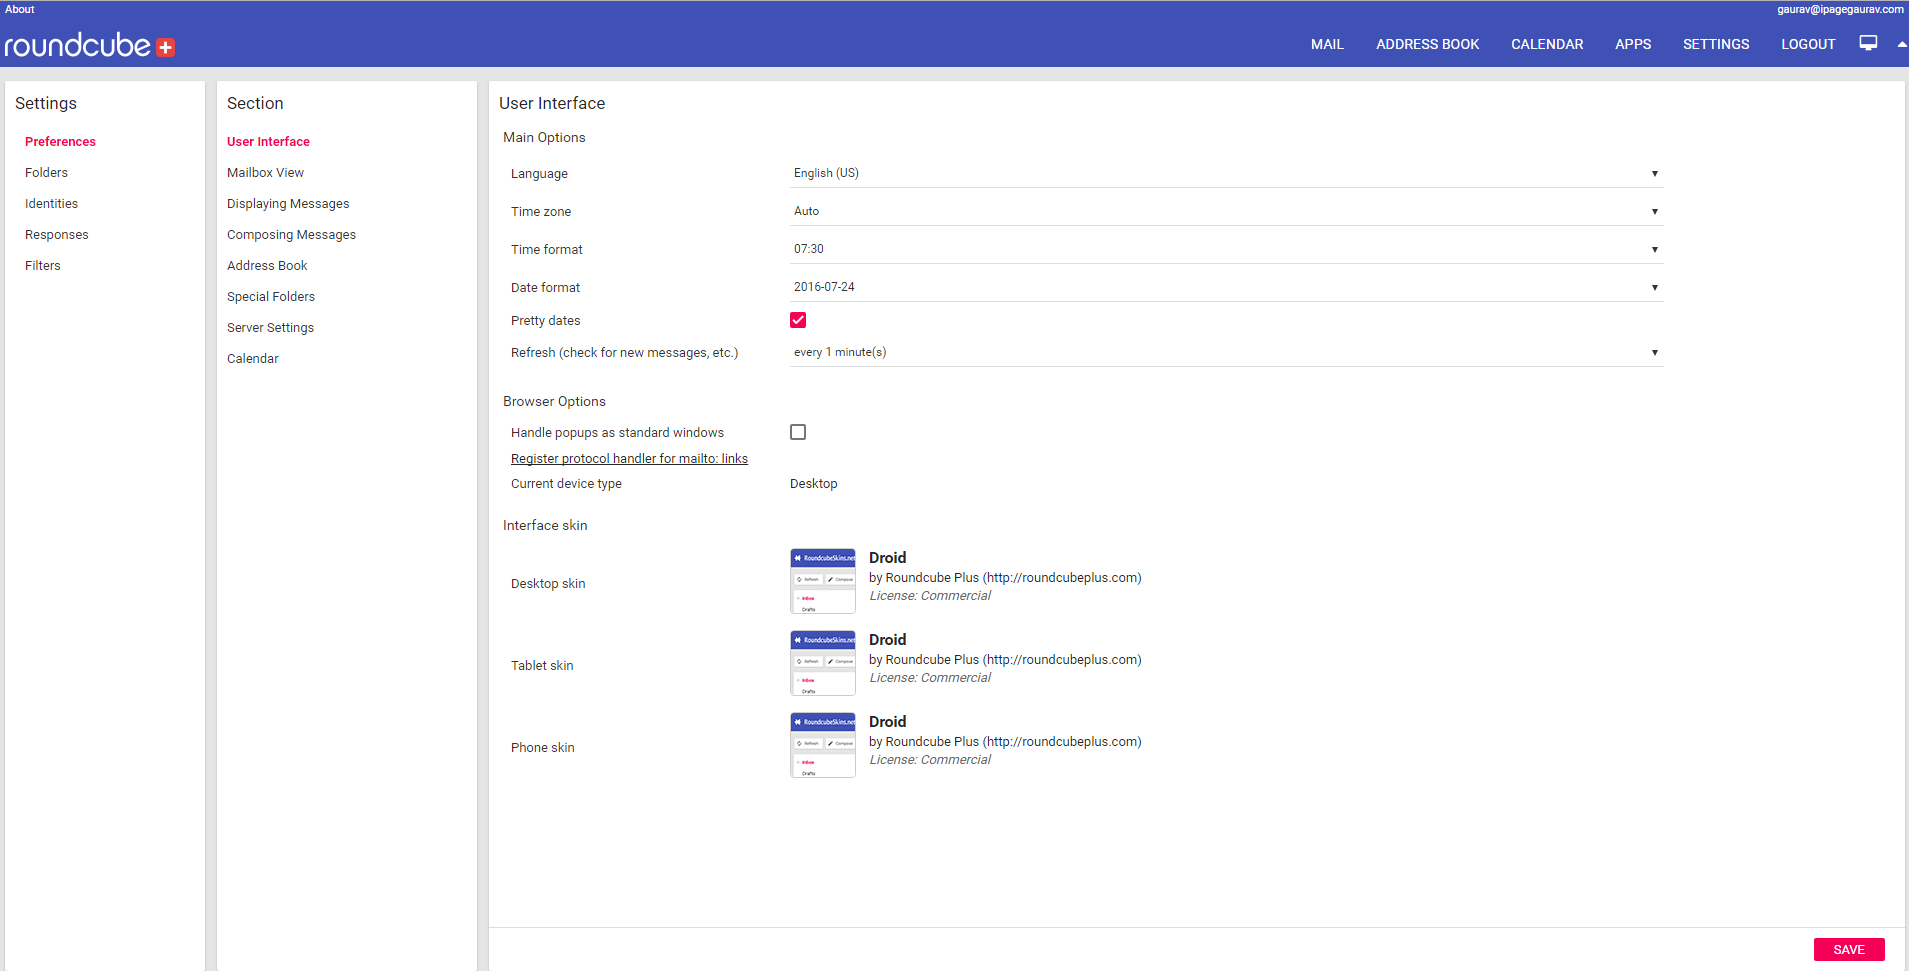 Navigate to Preferences-User Interface